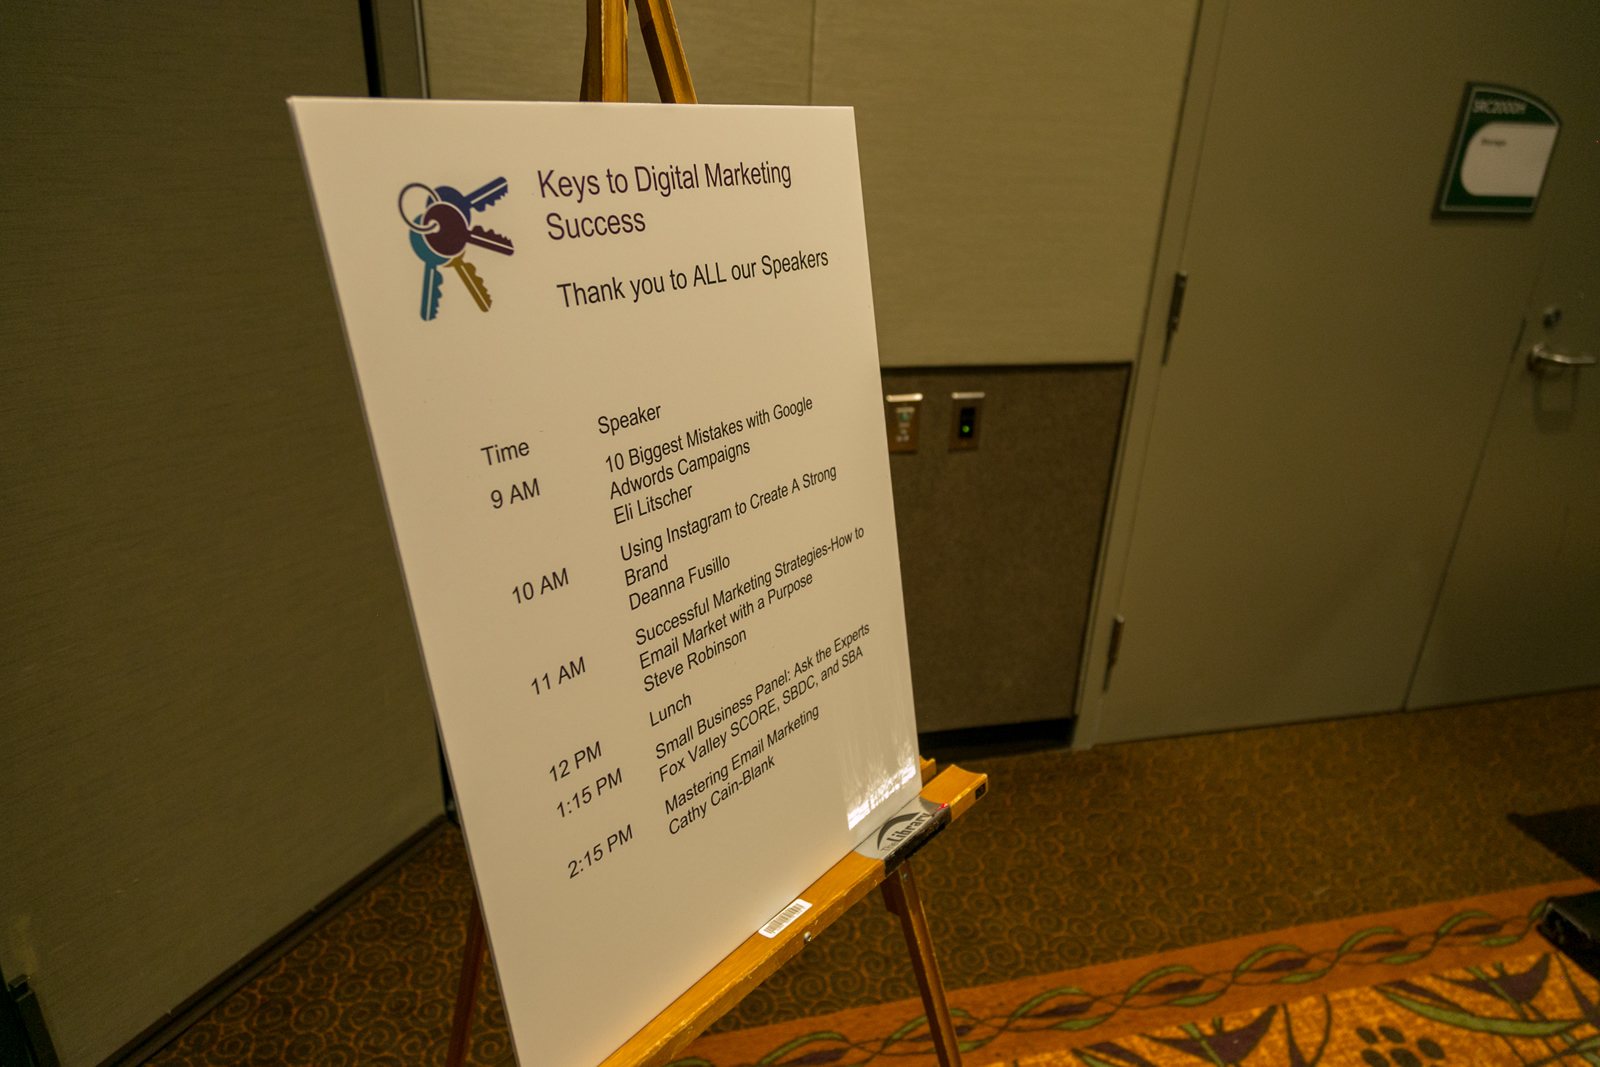 agenda of keys to digital marketing success conference